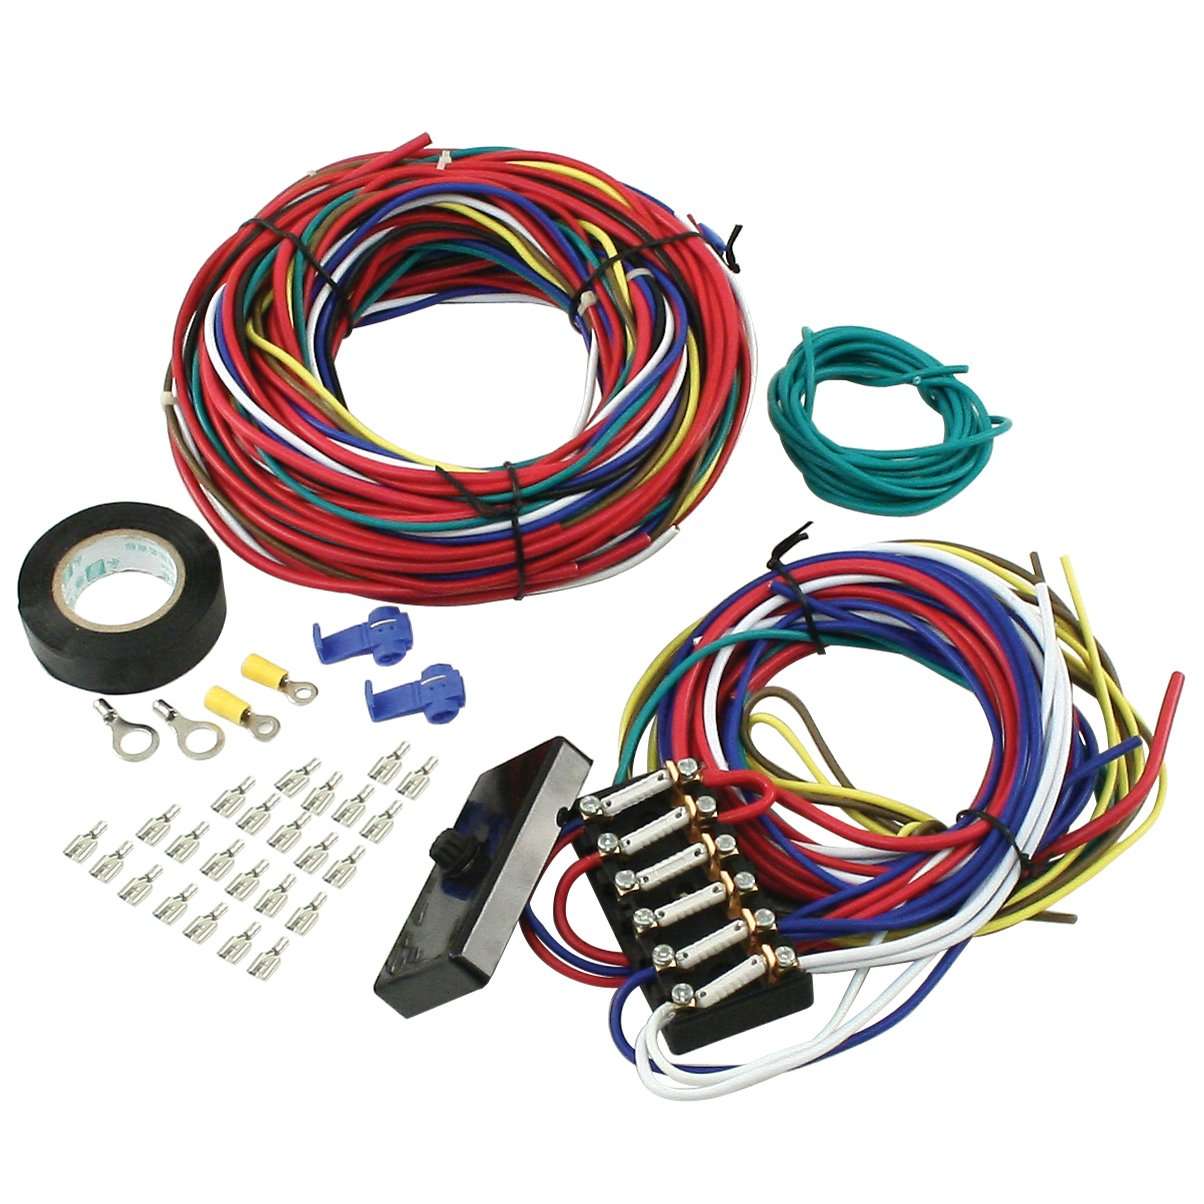 712Fyt3MSiL._SL1204_ amazon com empi 00 9466 0 wire loom kit, vw buggy, sand rail vw wiring harness kits at readyjetset.co